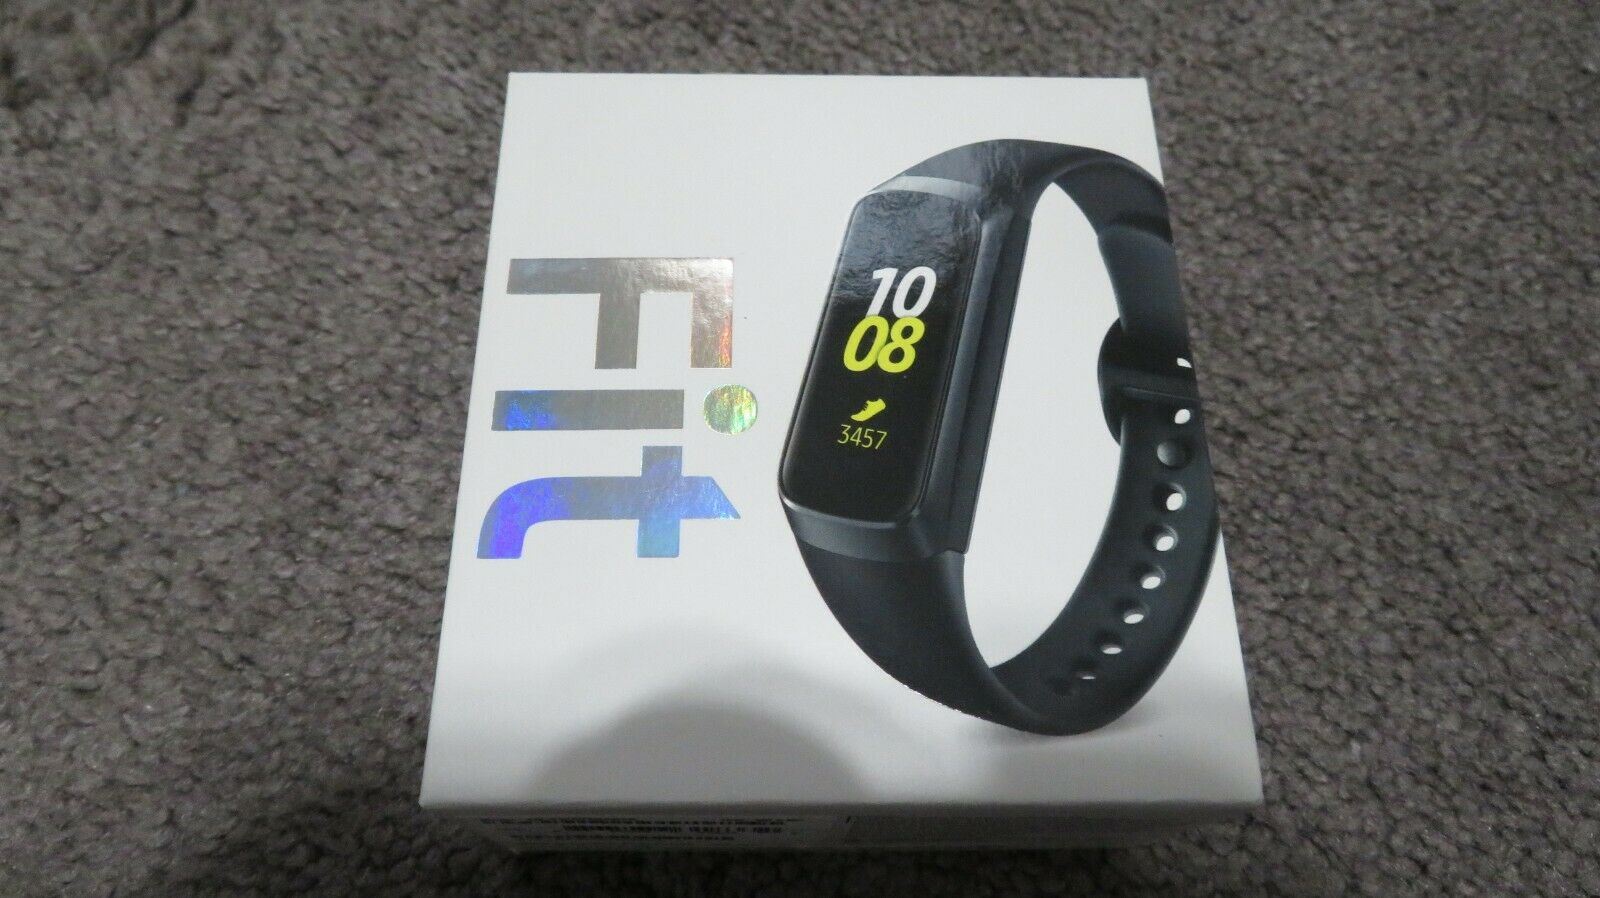 Samsung - Galaxy Fit Activity Tracker + Heart Rate - Black Model:SM-R370NZKAXAR